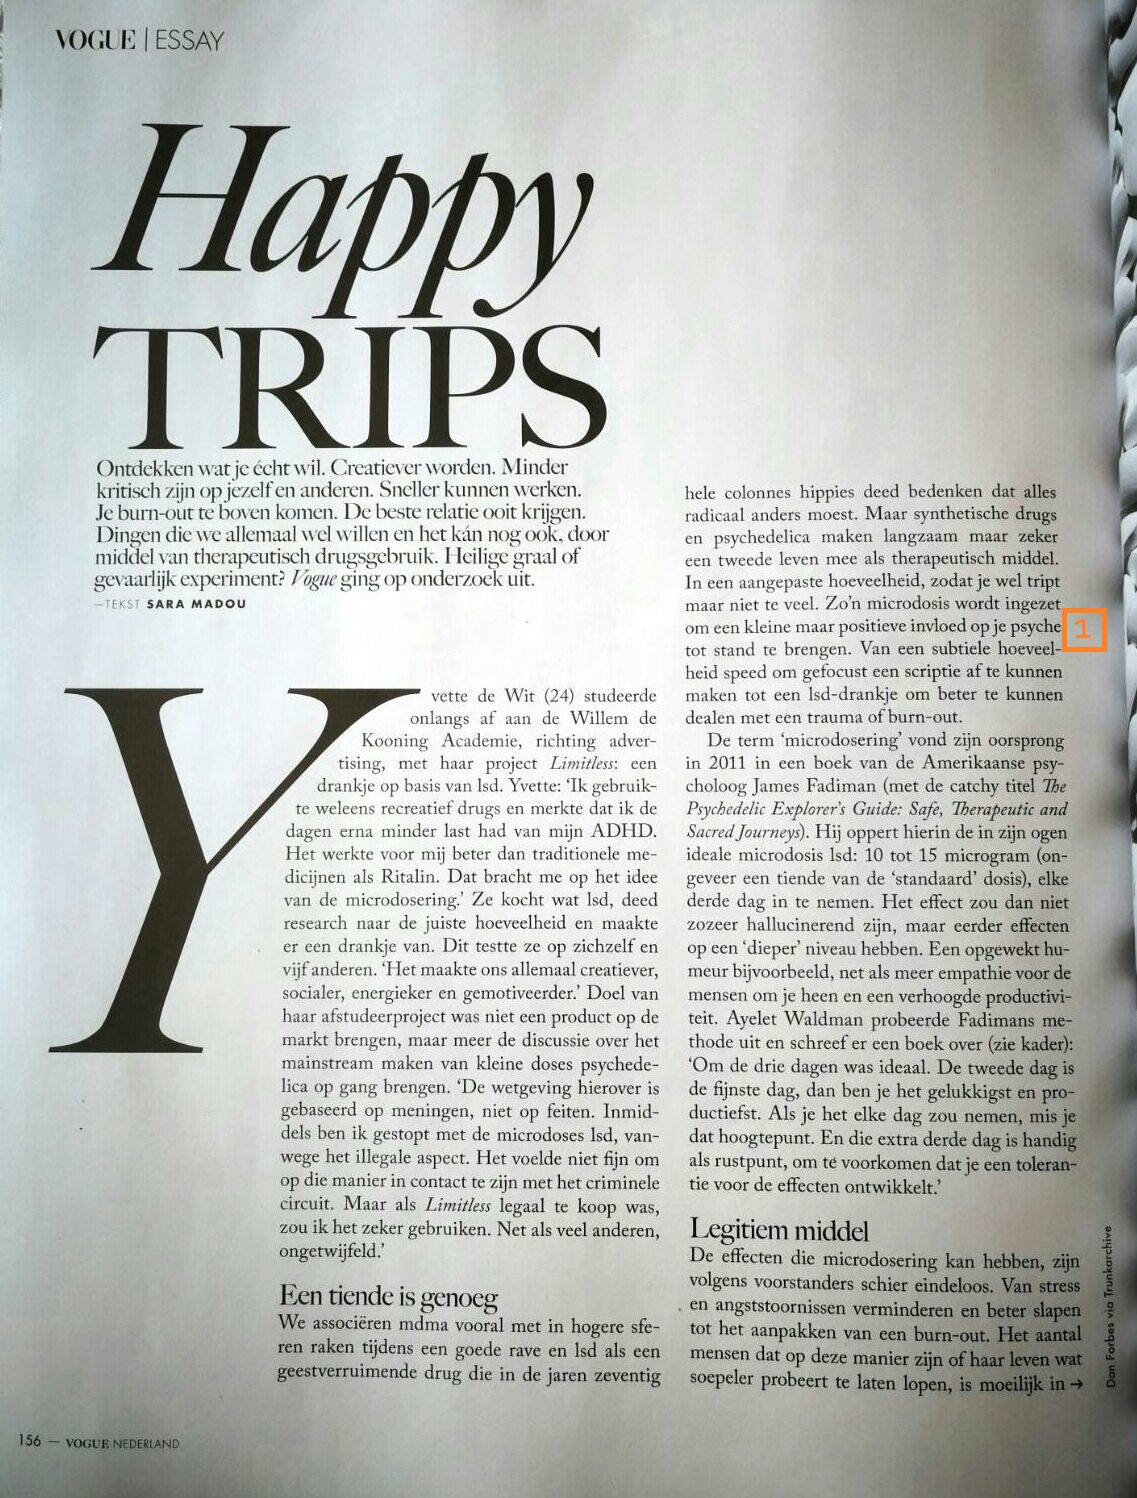 Guided Tripping in Happy Trips Vogue